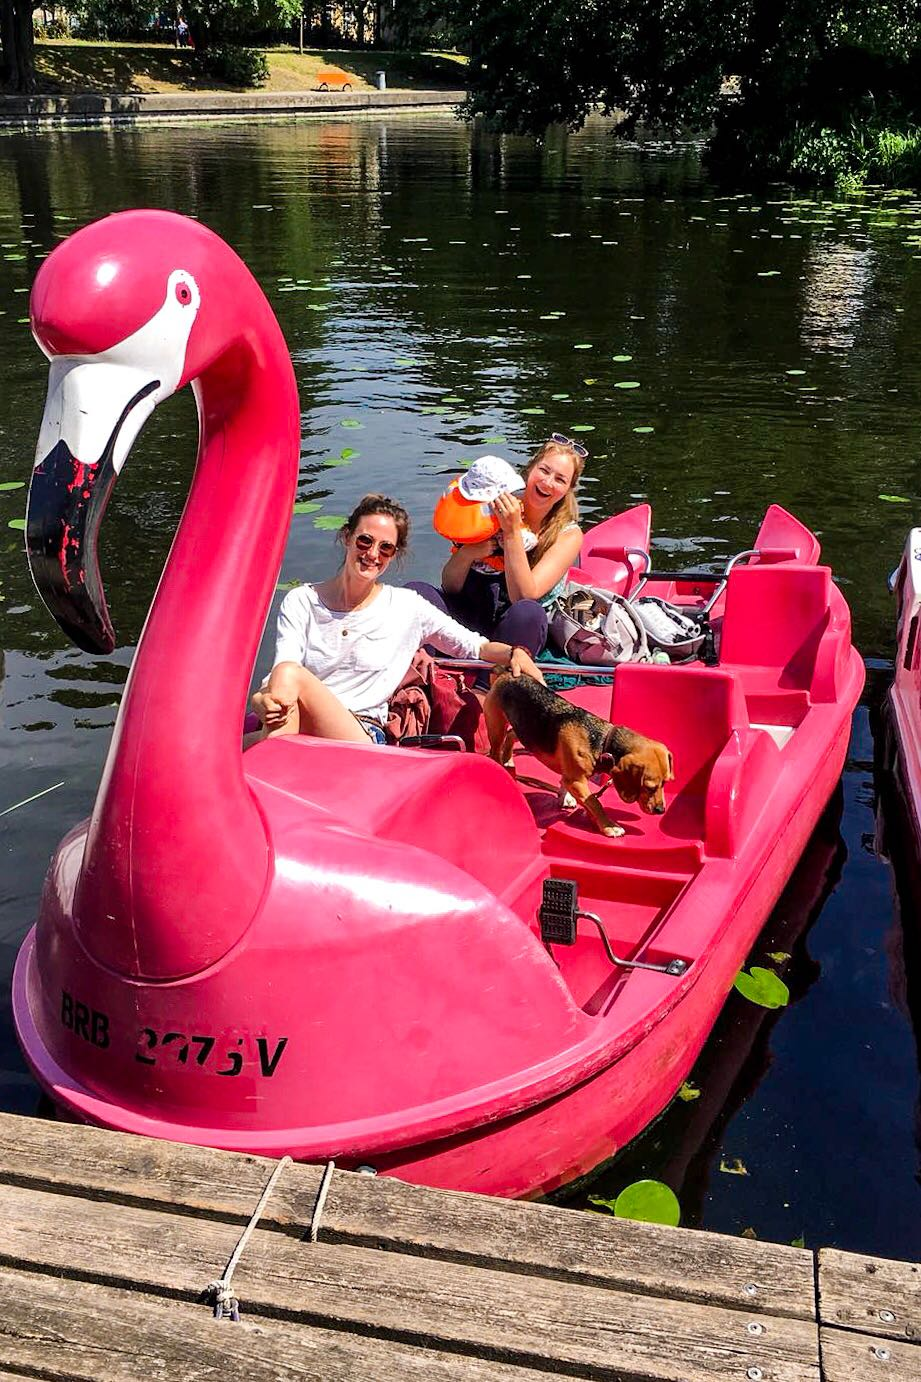 Flamingo Tretboot Potsdam